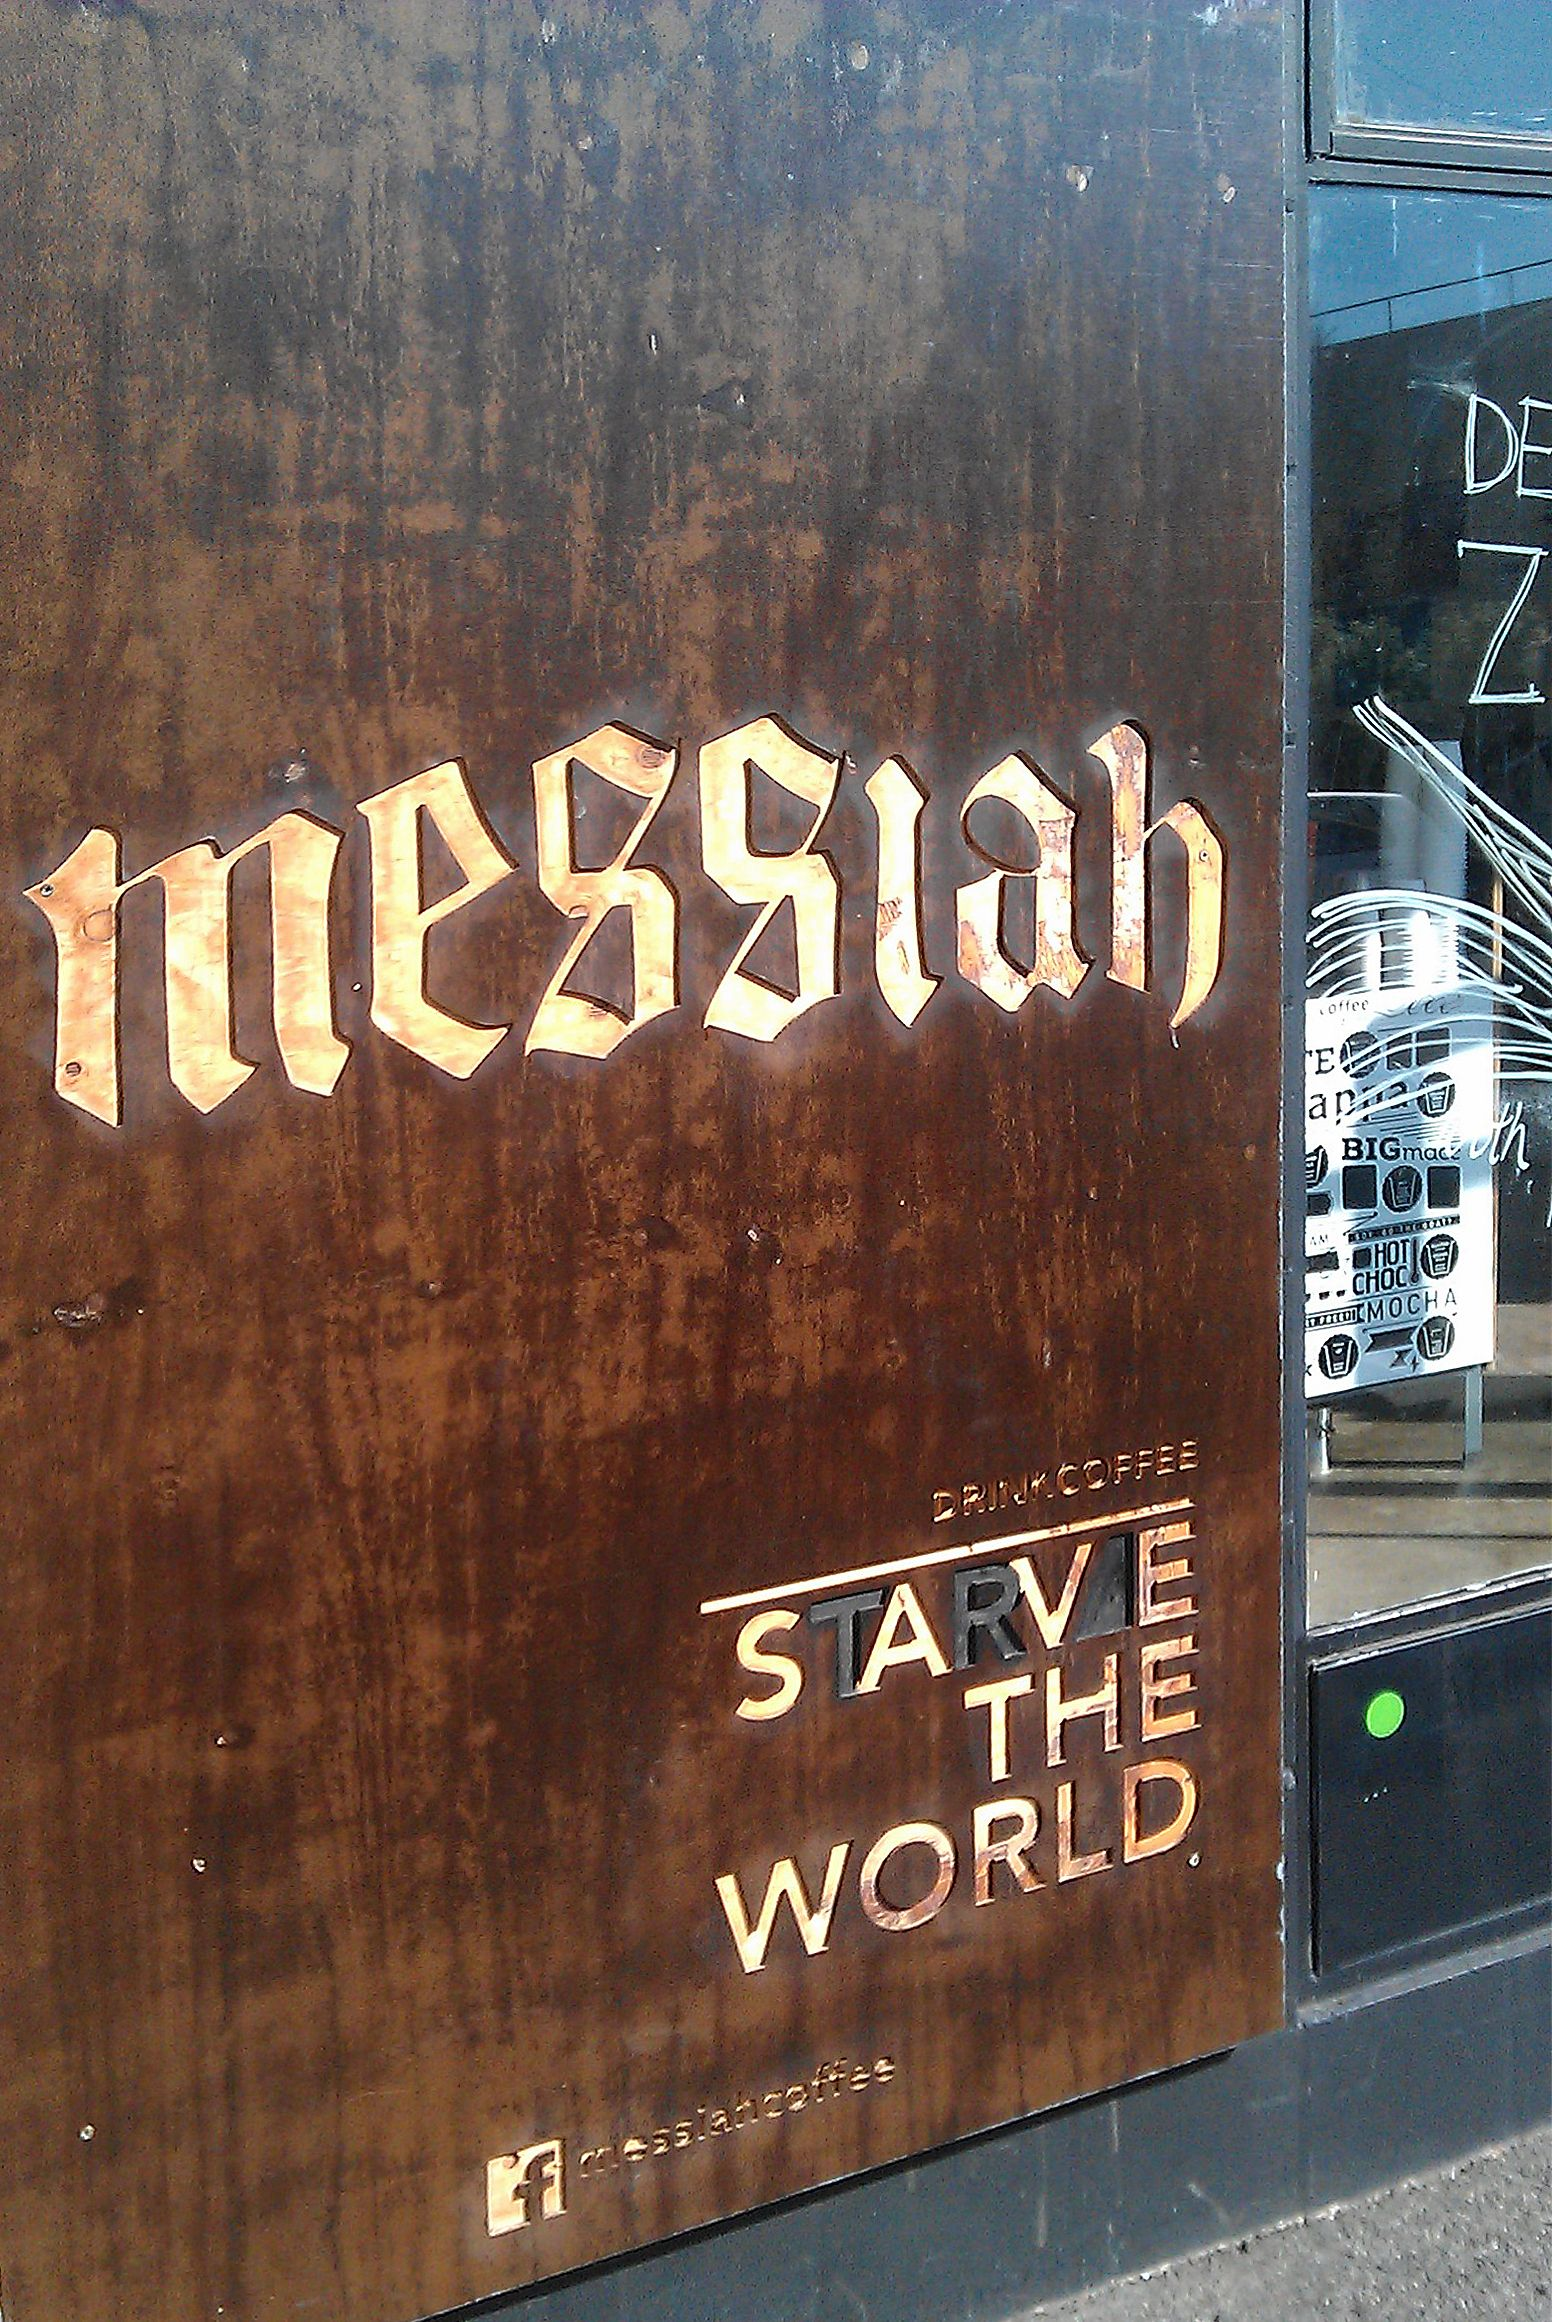 Messiah Cafe Tasmania Australia Retro Strong Coffee Cool Board And Nice Magazines Price You Nominate Profits Go To World Hunger